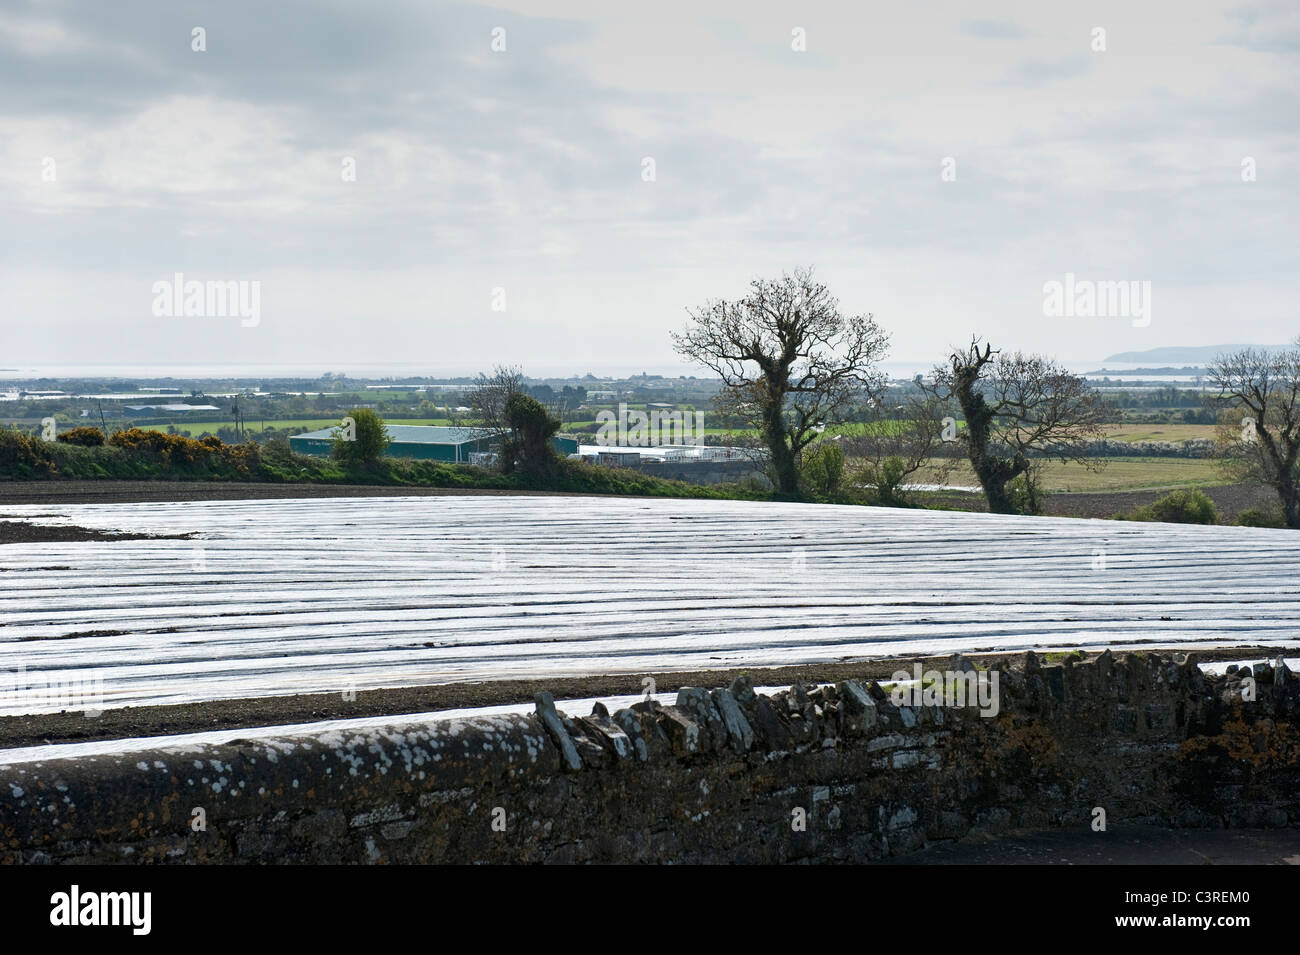 Plastic sheeting covering a field to encourage early growth of potatoes. Near Skerries, county Dublin, Ireland - Stock Image